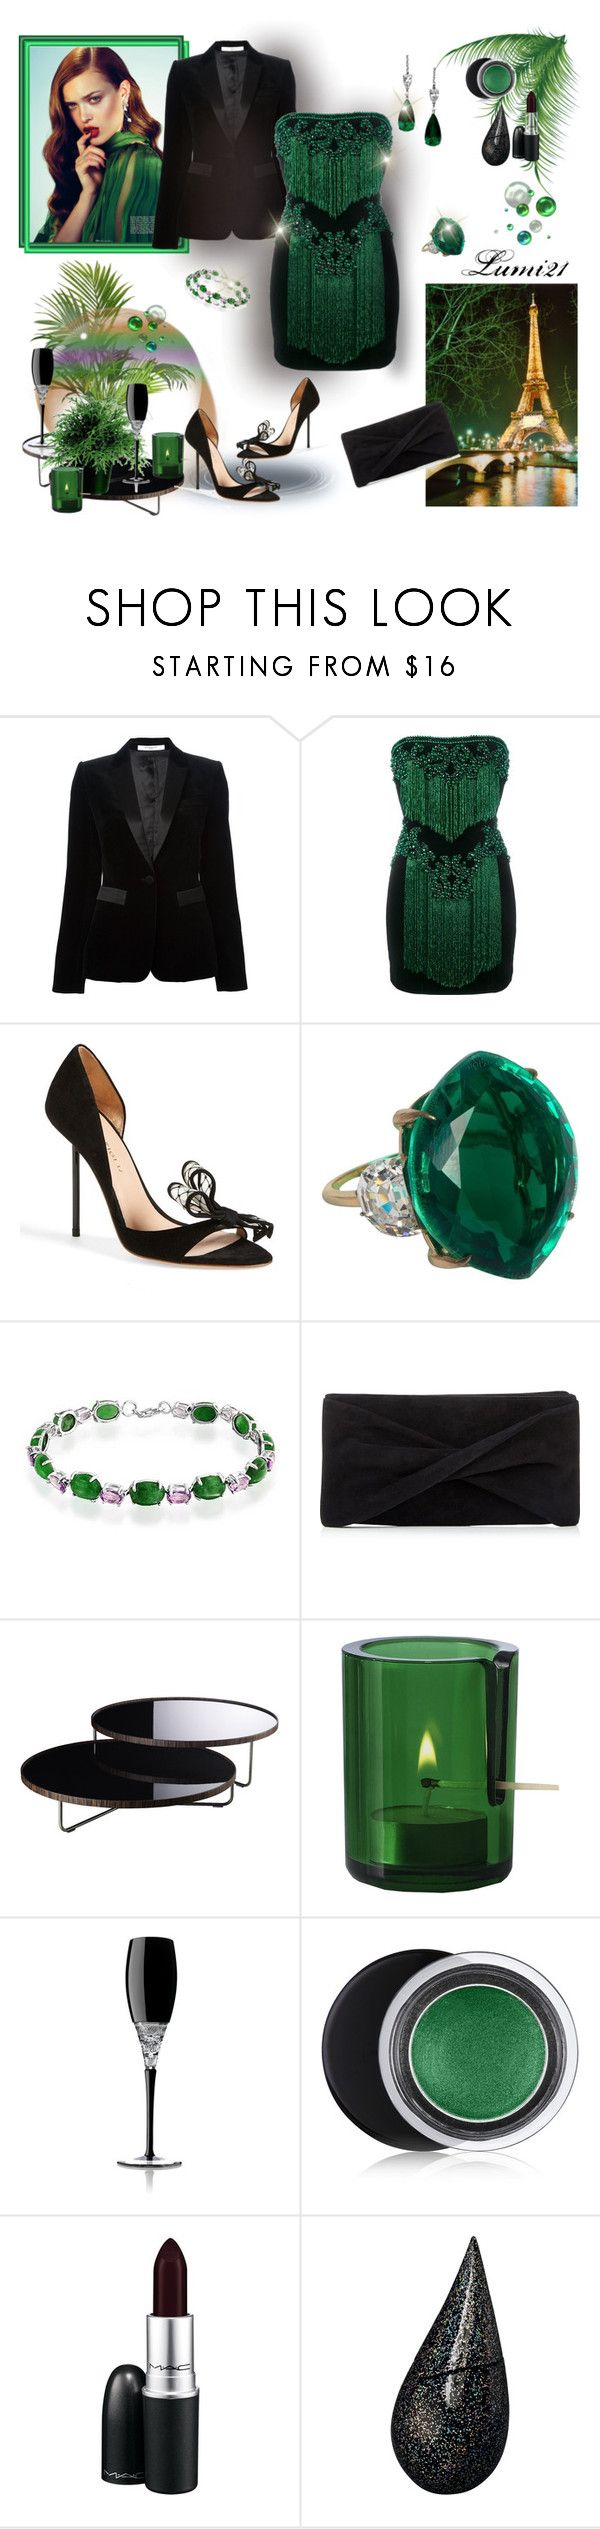 """party"" by lumi-21 ❤ liked on Polyvore featuring Givenchy, Balmain, Kurt Geiger, Bling Jewelry, Reiss, Modloft, Muuto, Waterford, Estée Lauder and MAC Cosmetics"